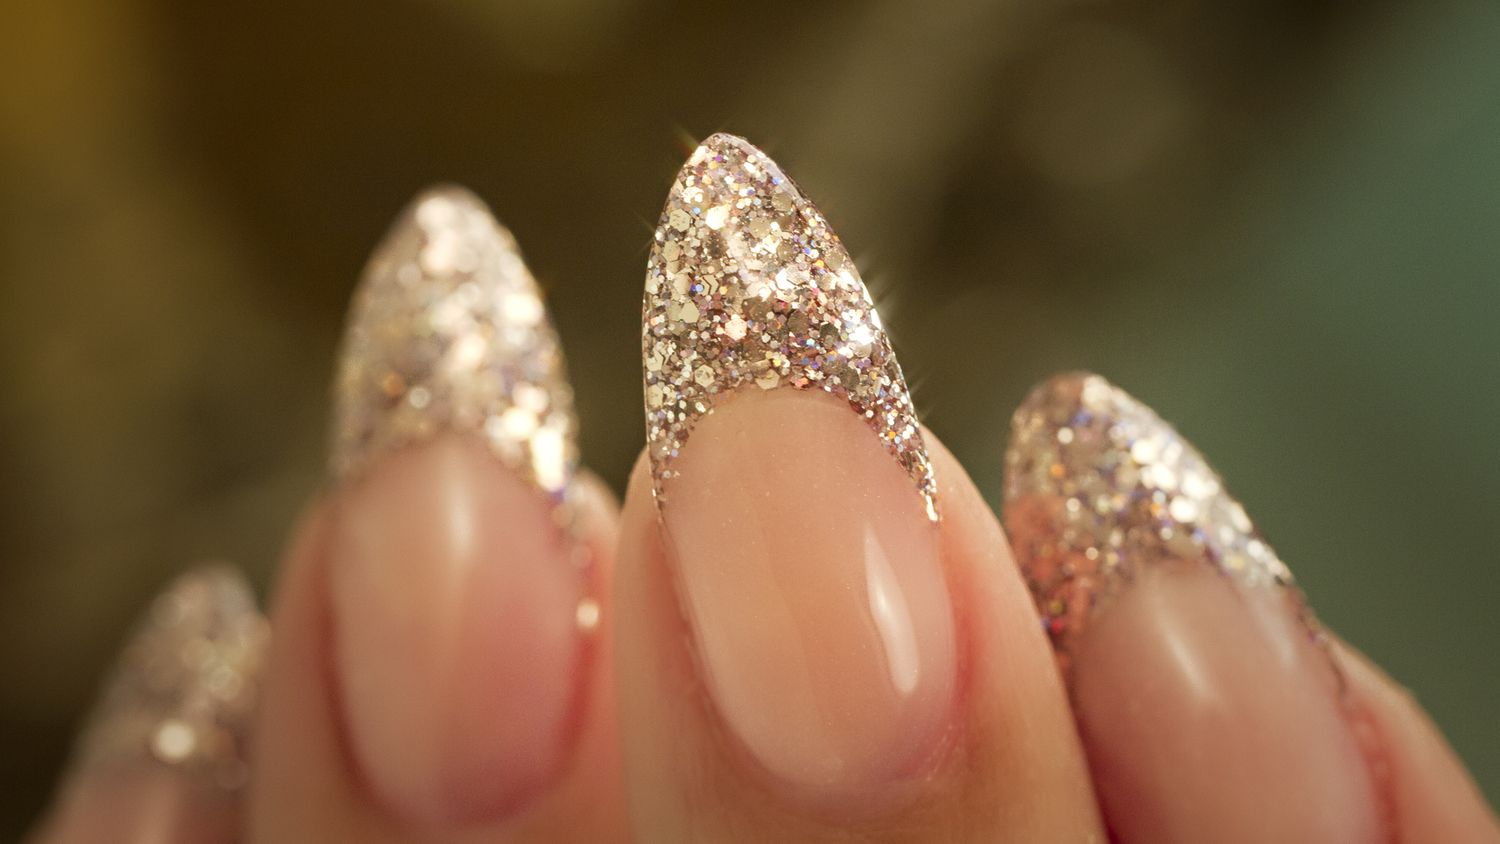 Almond Shaped French Manicure With Gold Glittery Tip